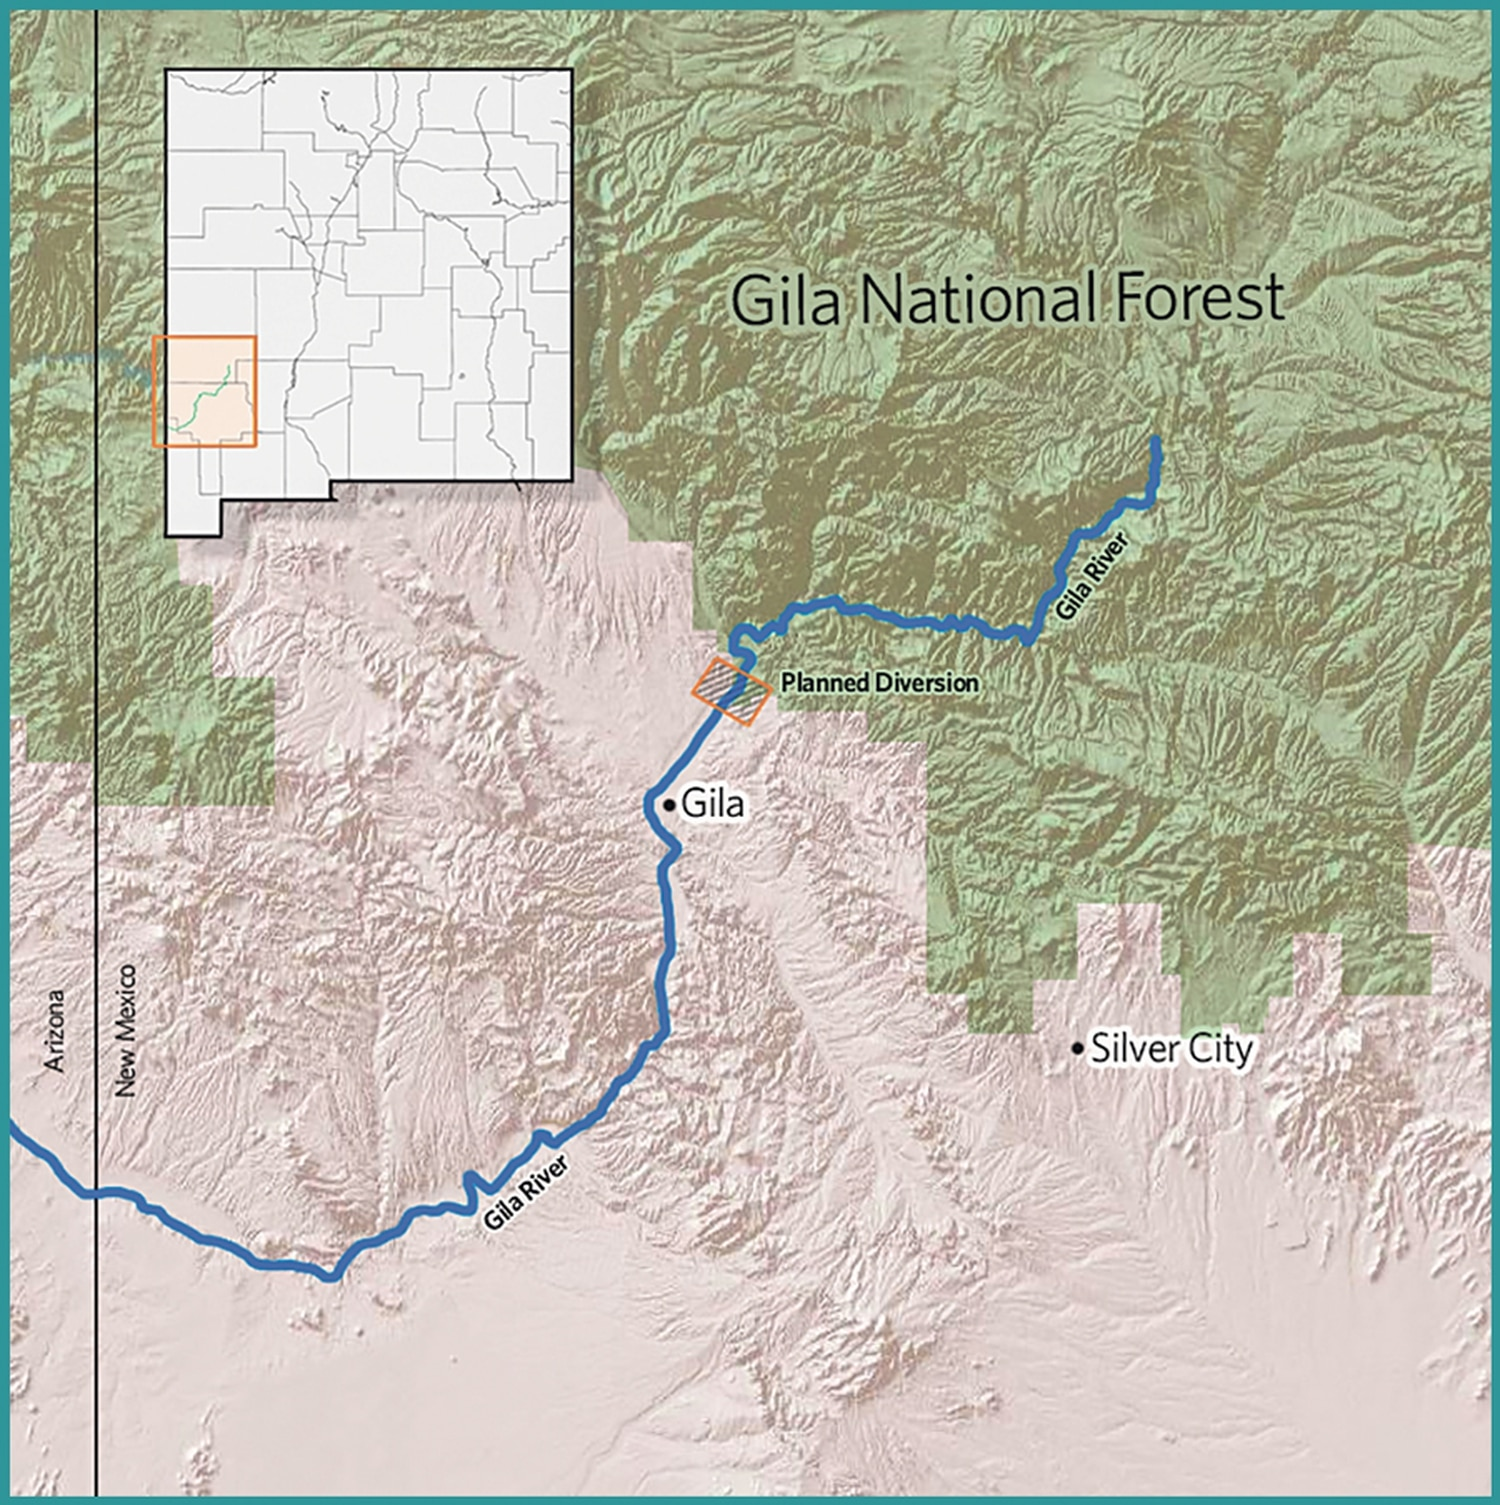 The headwaters of the Gila River lie in the mountains of southwestern New Mexico. Then the river flows to Arizona, where it meets the Colorado River near Yuma.